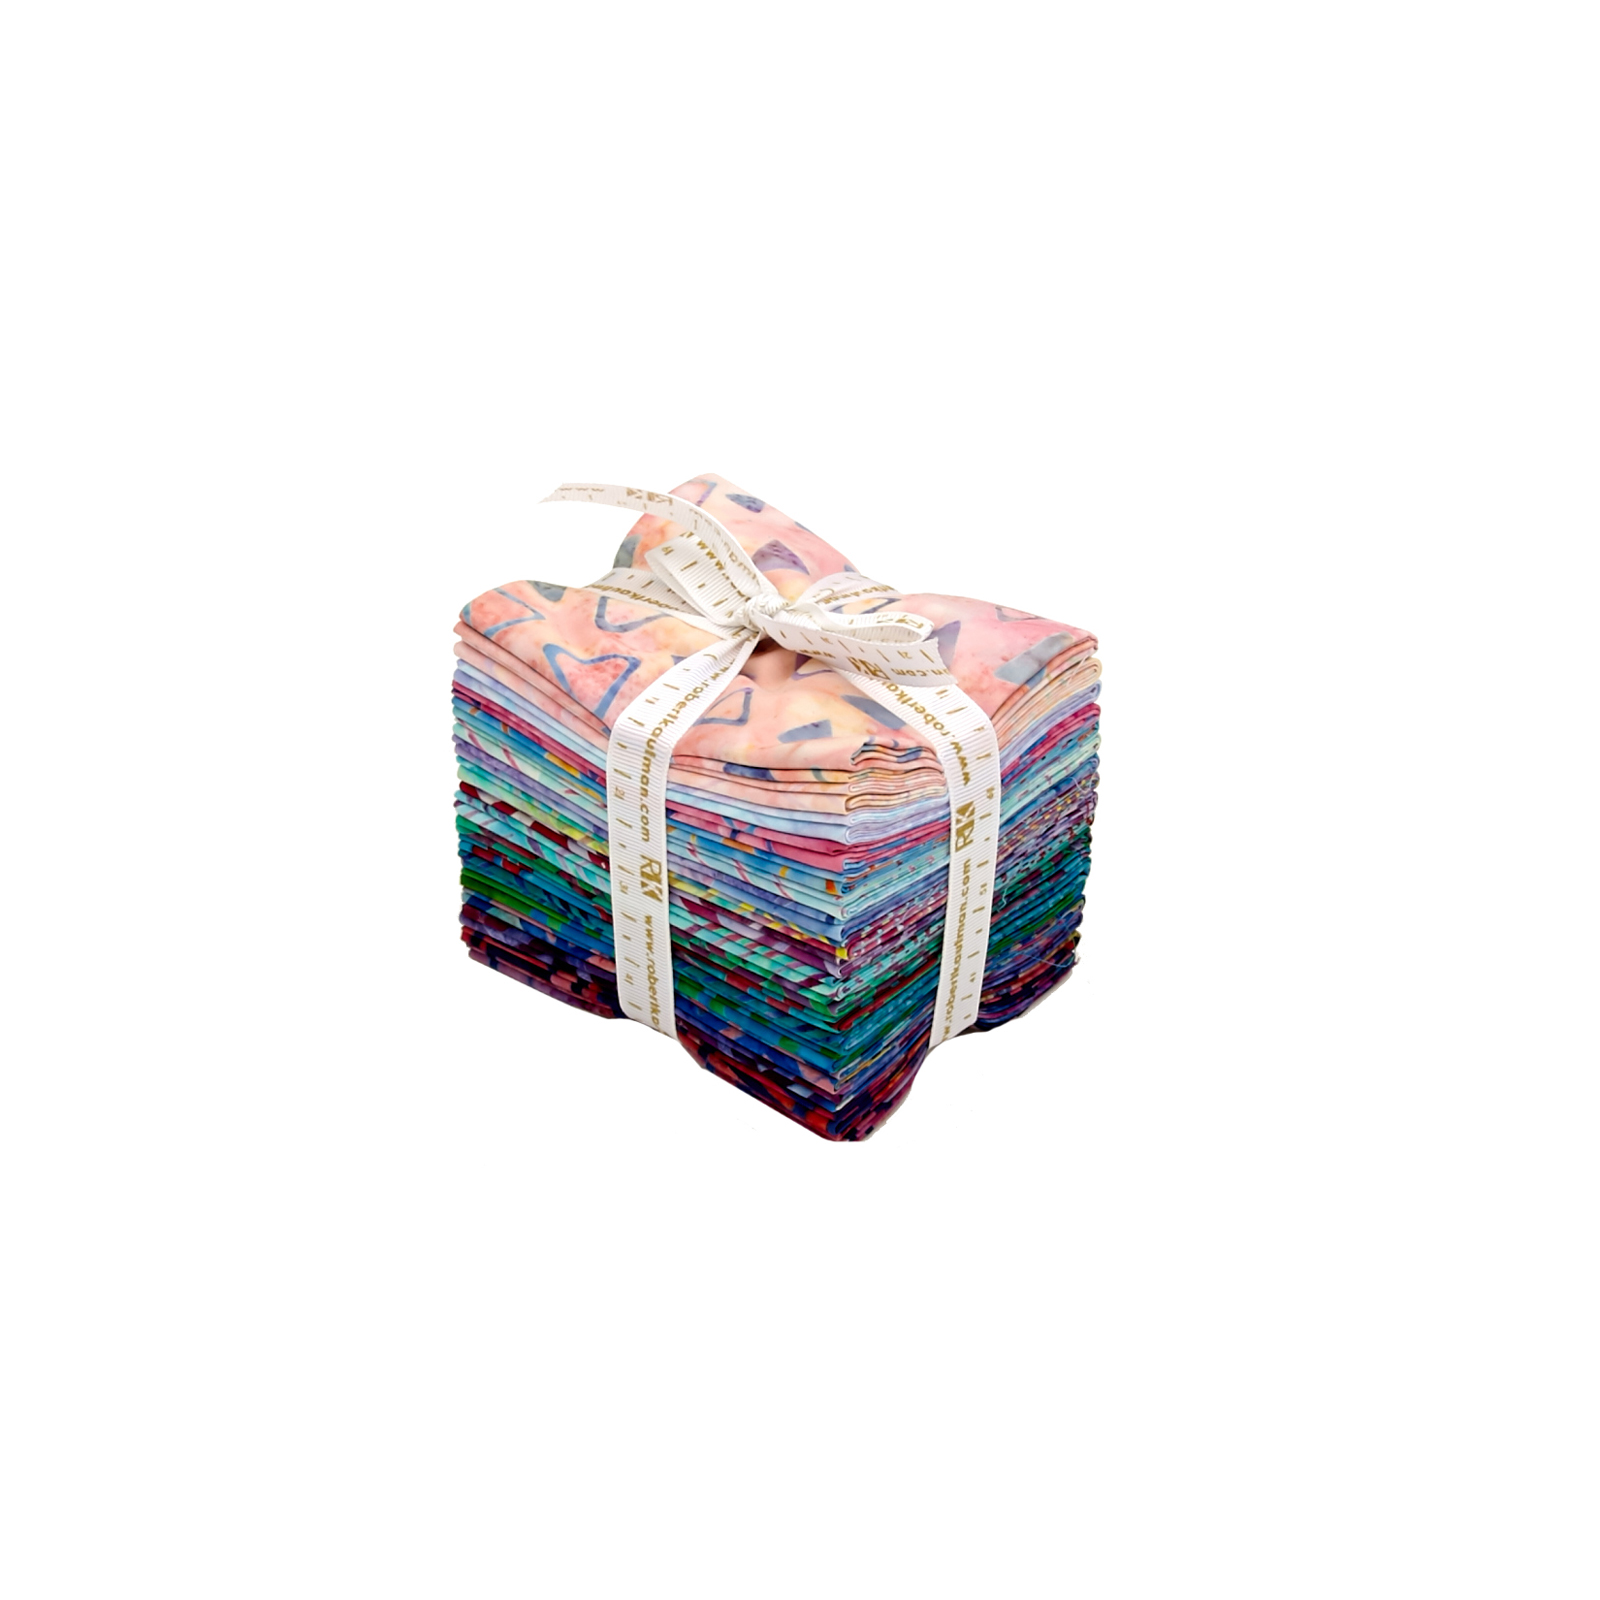 Kaufman To The Point Fat Quarter Bundle by Kaufman in USA